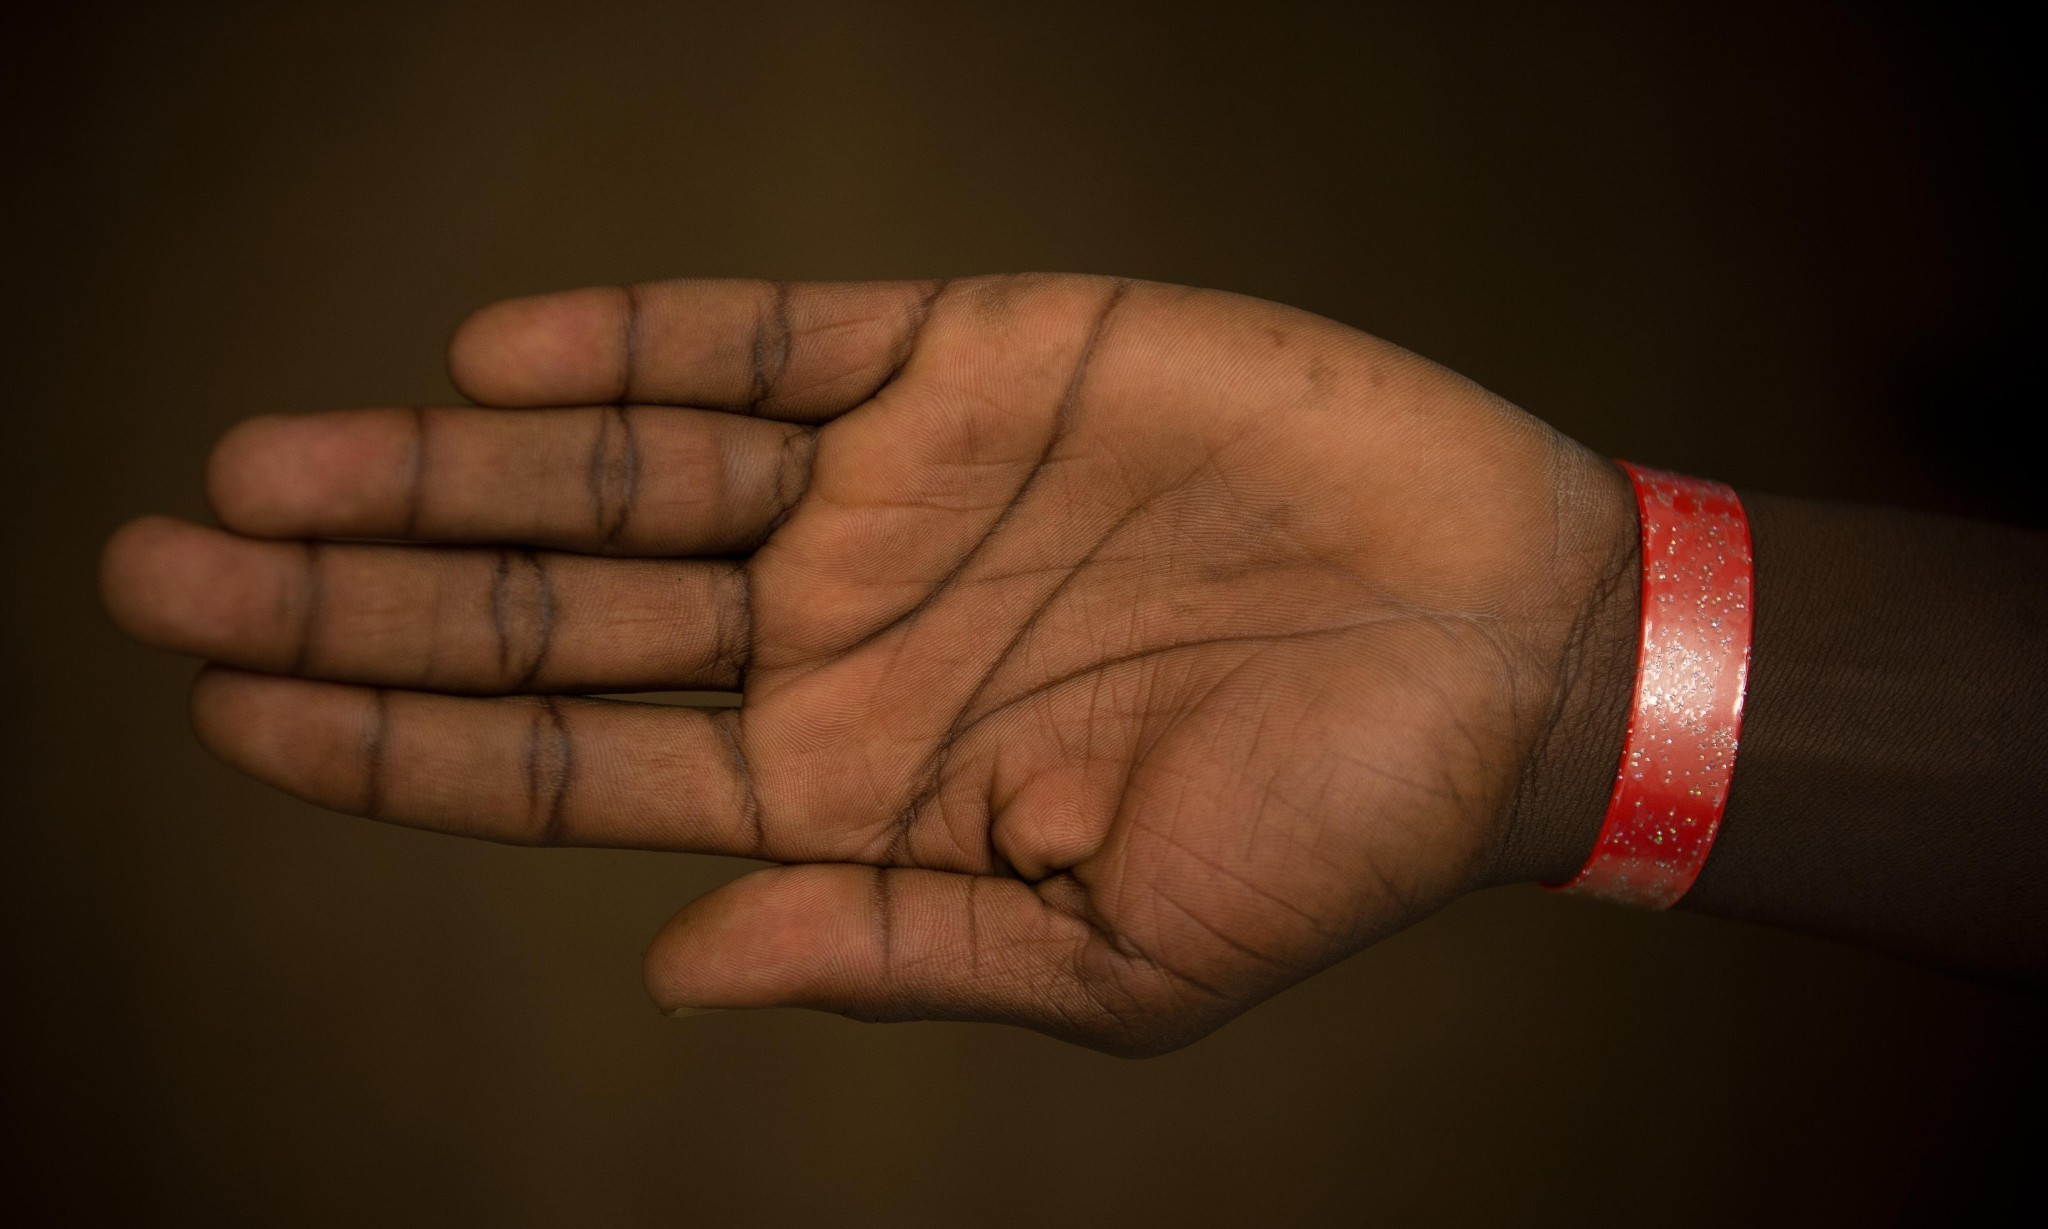 Asylum seekers made to wear coloured wristbands in Cardiff